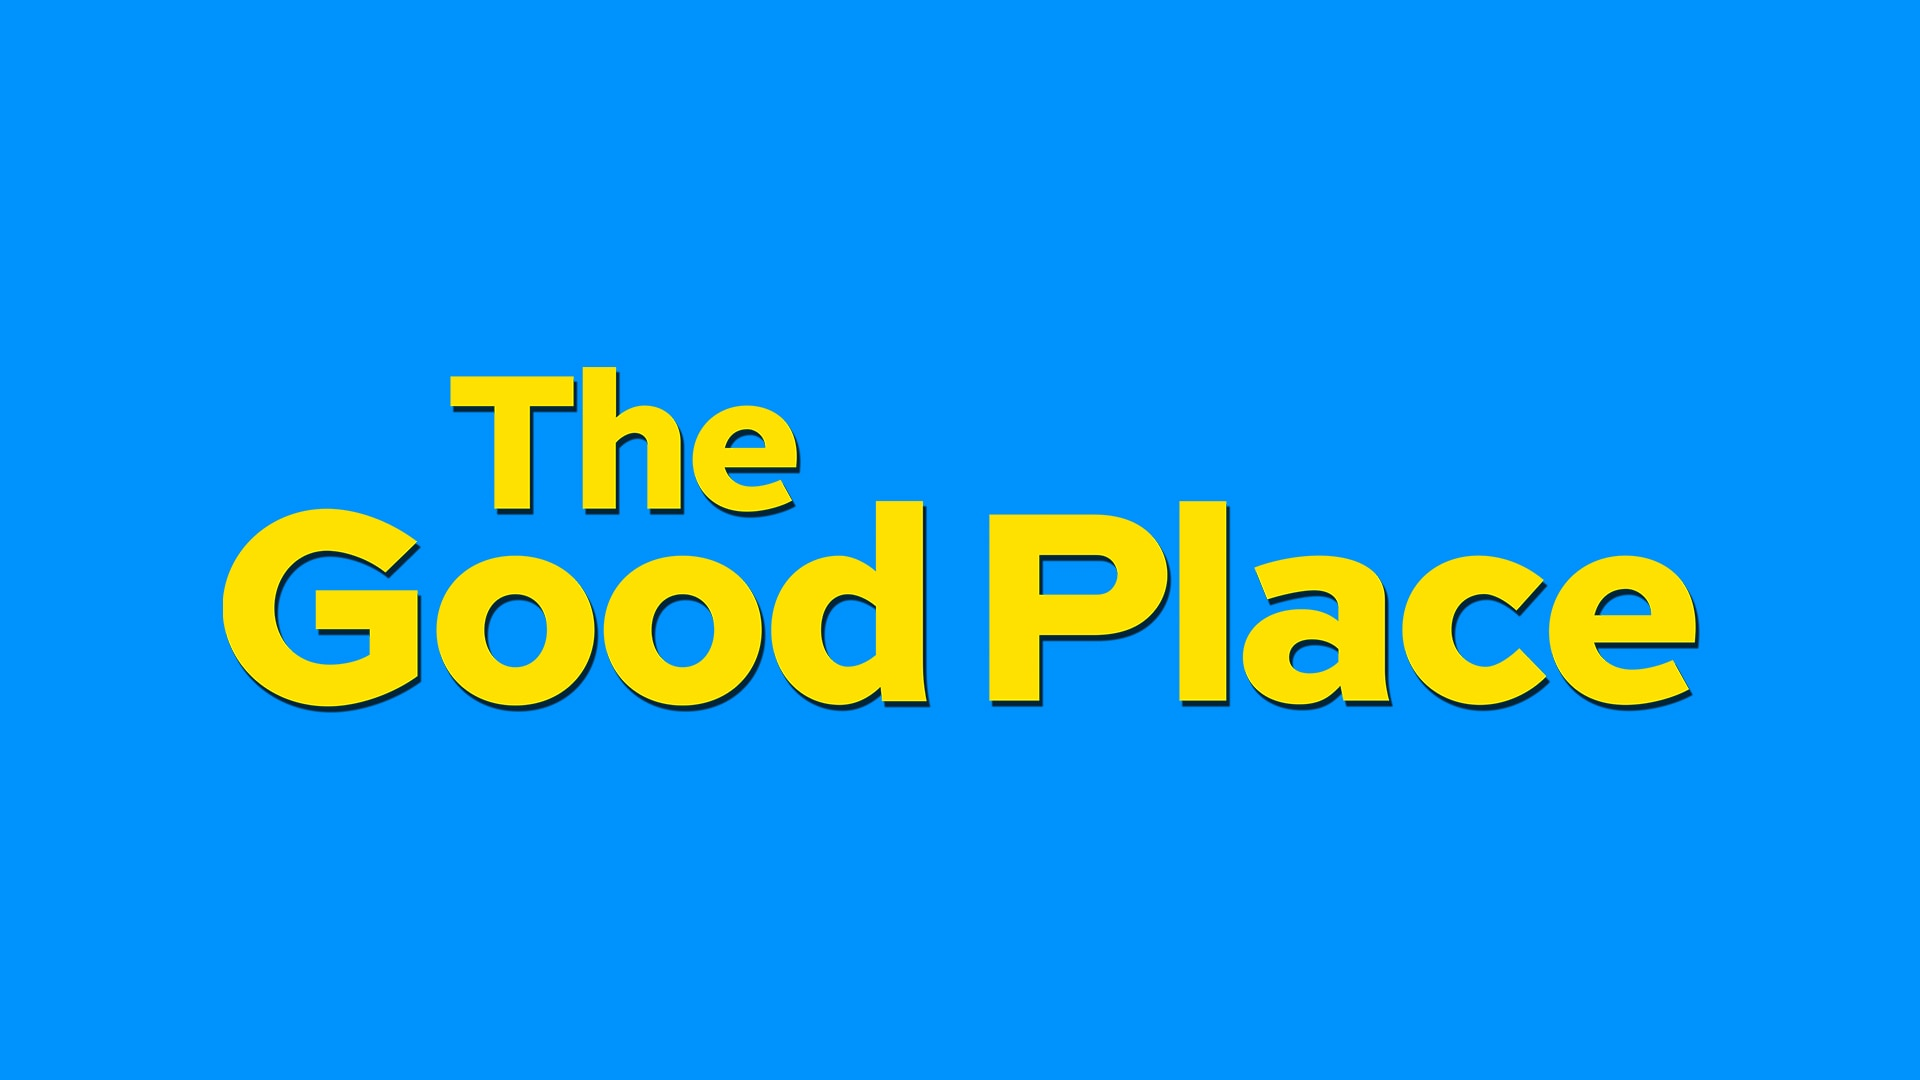 The Good Place on FREECABLE TV